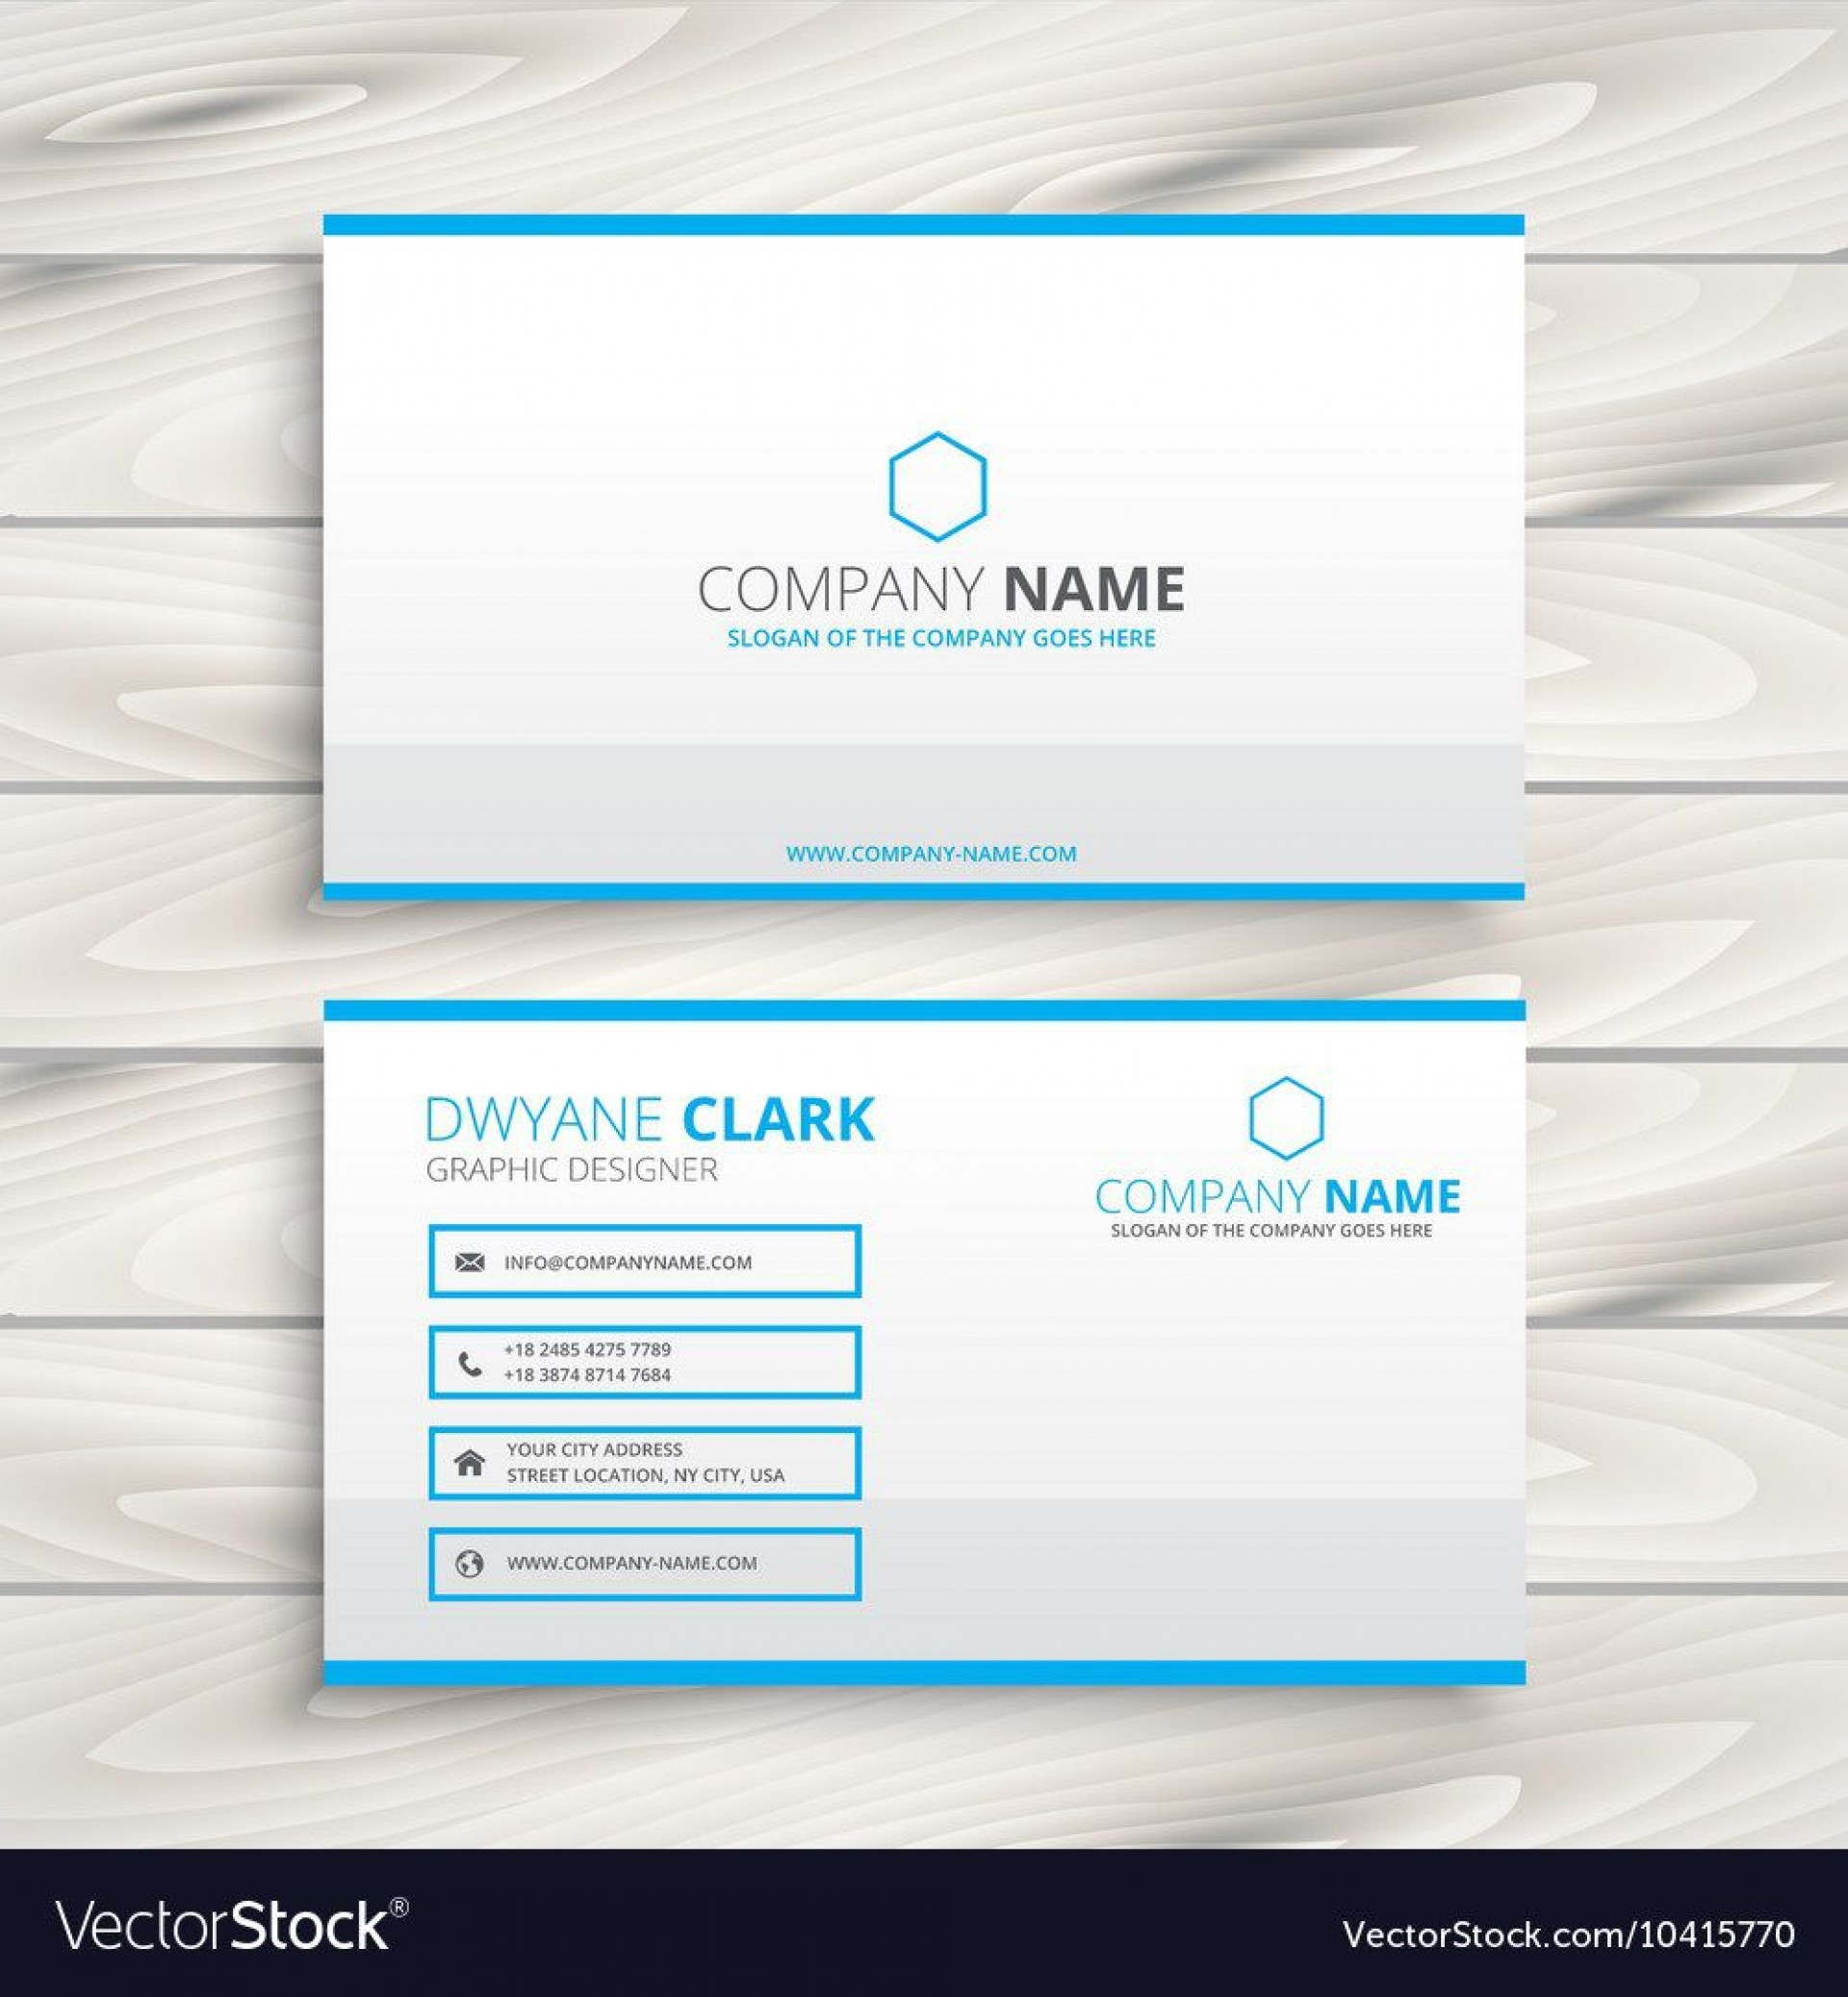 007 Impressive Name Card Template Free Download Concept  Table Ai Wedding1920